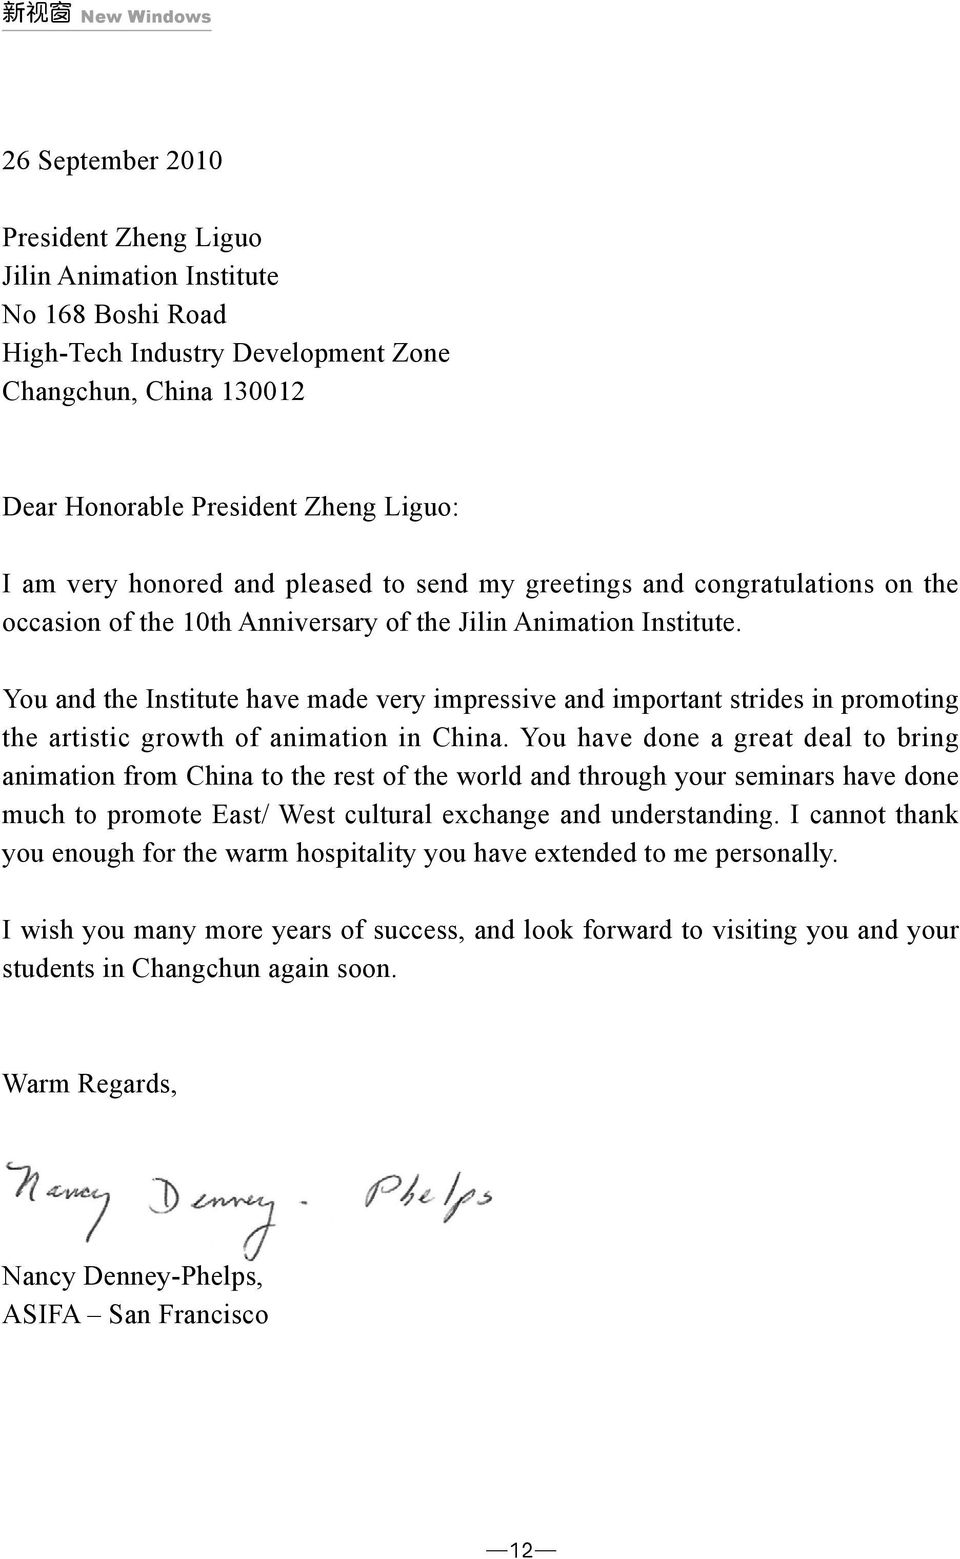 You and the Institute have made very impressive and important strides in promoting the artistic growth of animation in China.